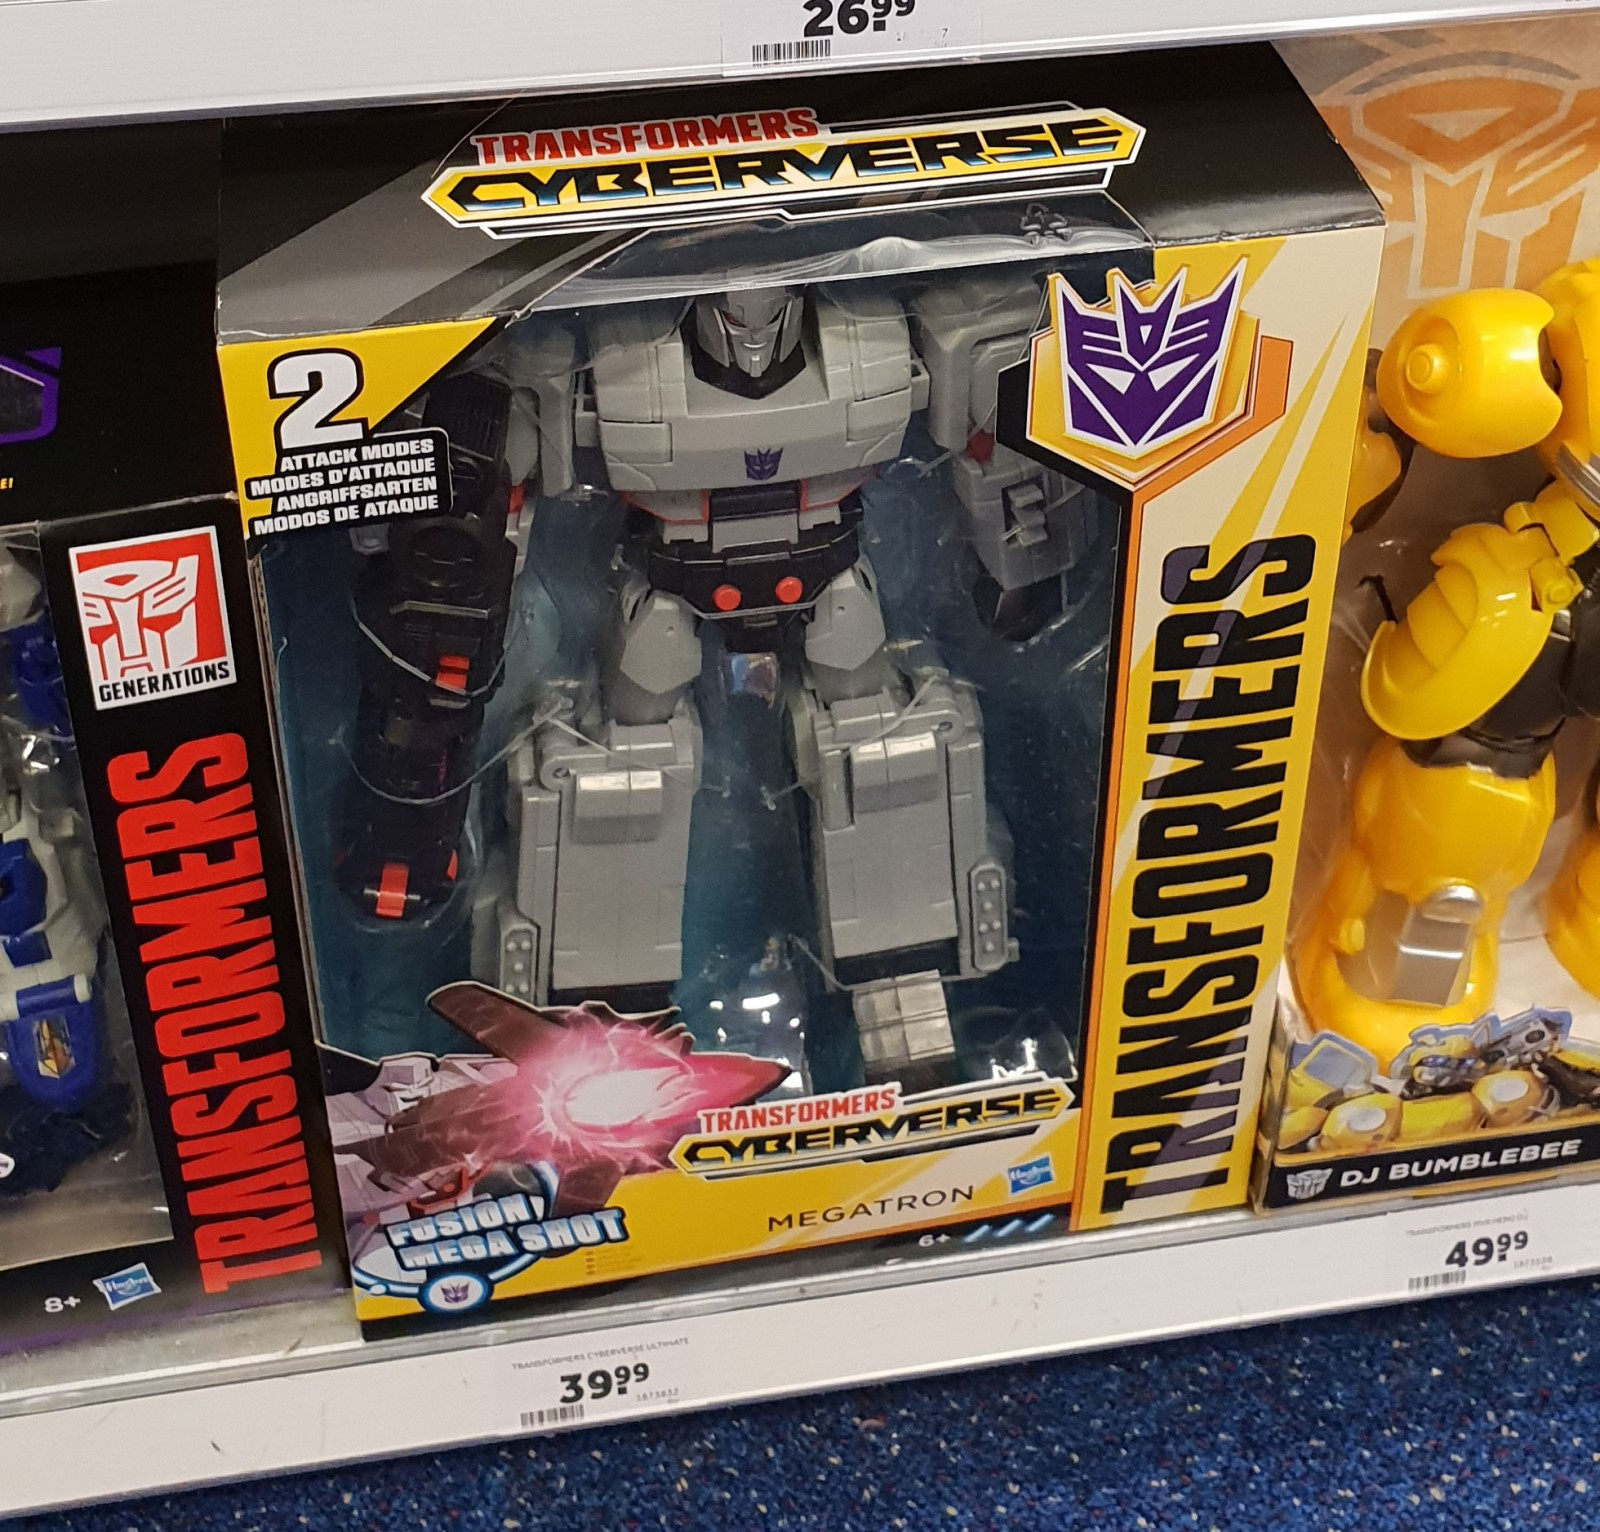 Transformers News: Upcoming Bumblebee Movie toys found in Netherlands